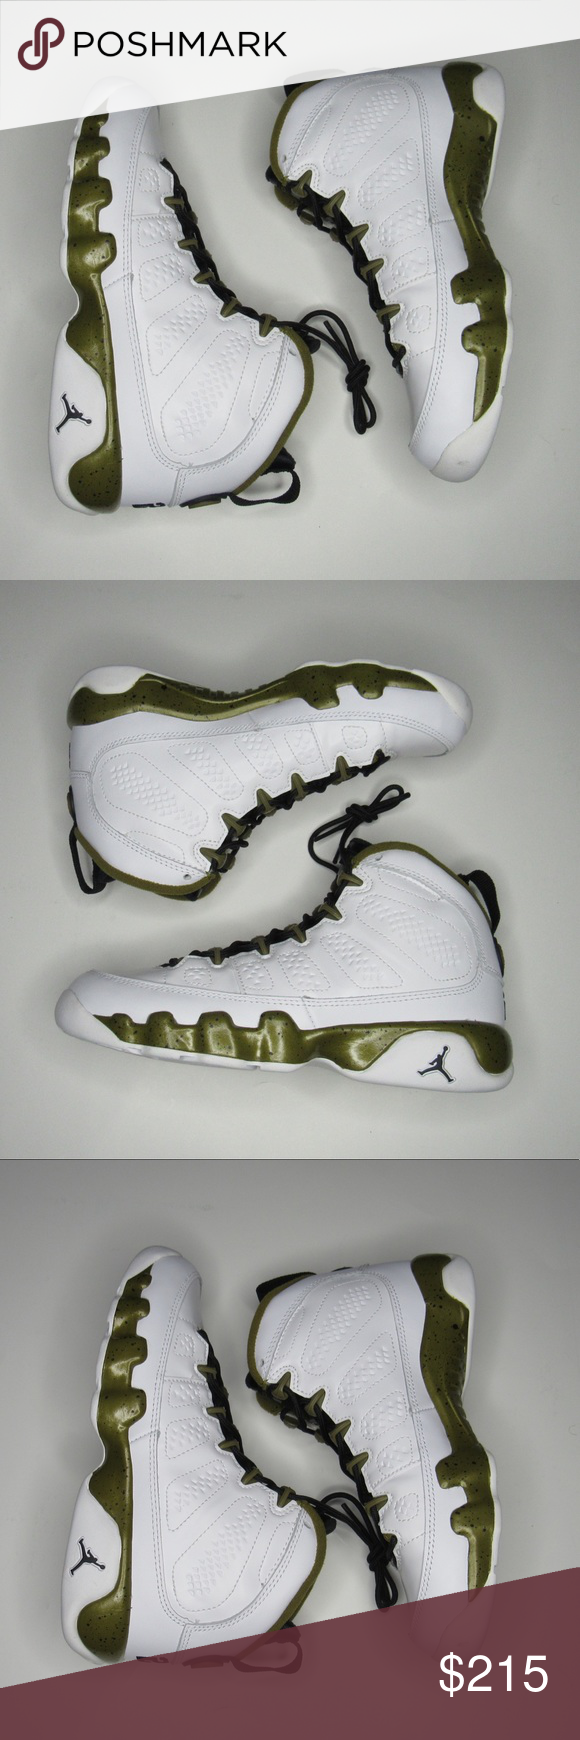 "reputable site a0583 4e756 Air Jordan 9 Retro ""Statue"" Condition: NEW WITH BOX Color(s ..."